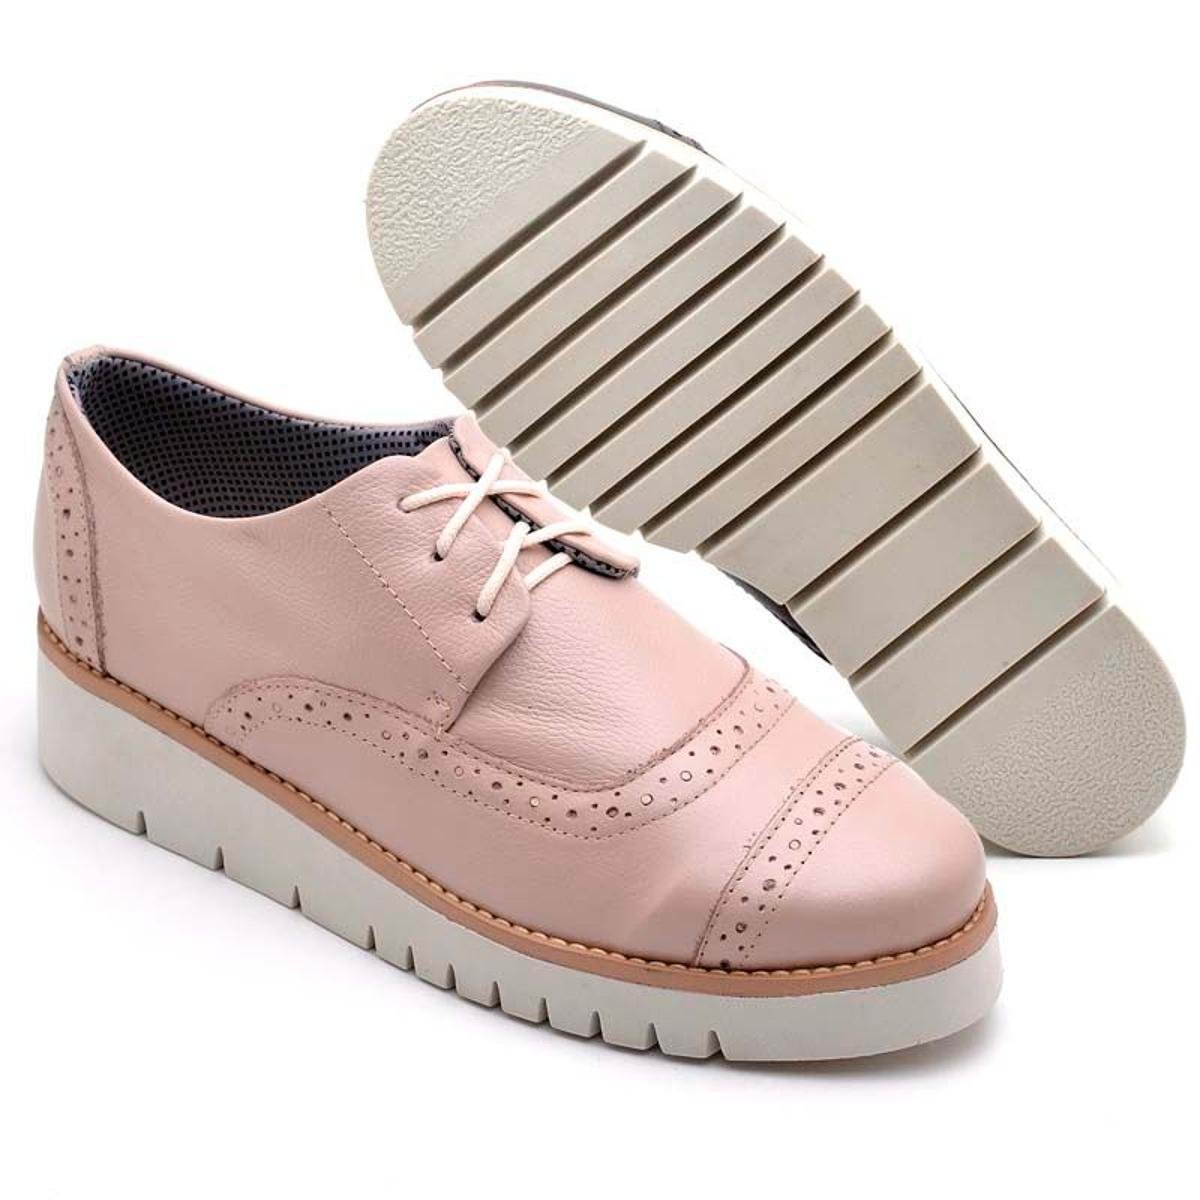 Shoes Casual Top Franca Nude Oxford Feminino Oxford Top Hq7IP